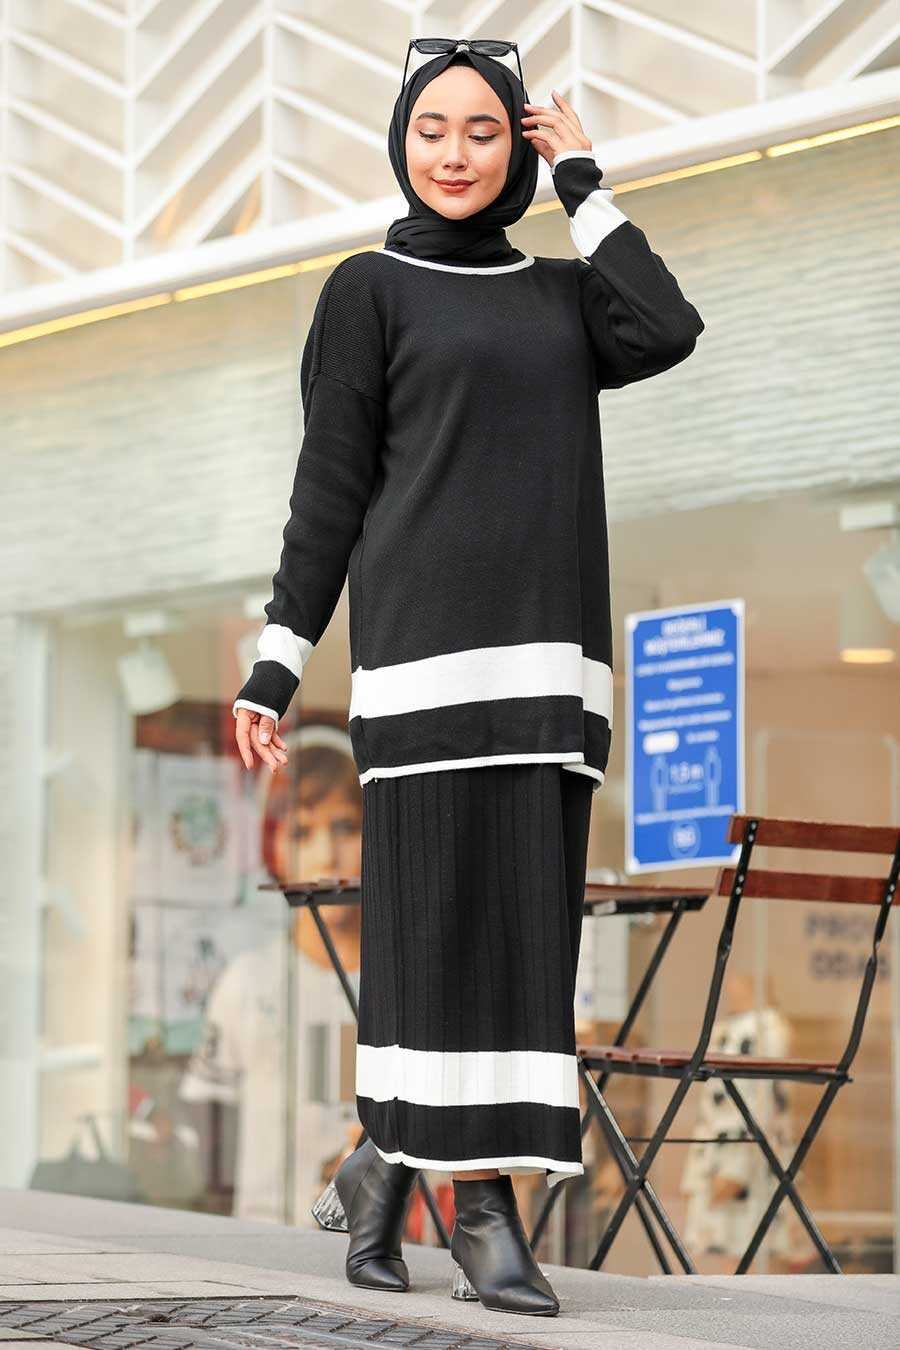 Black Hijab Dual Suit Dress 9681S